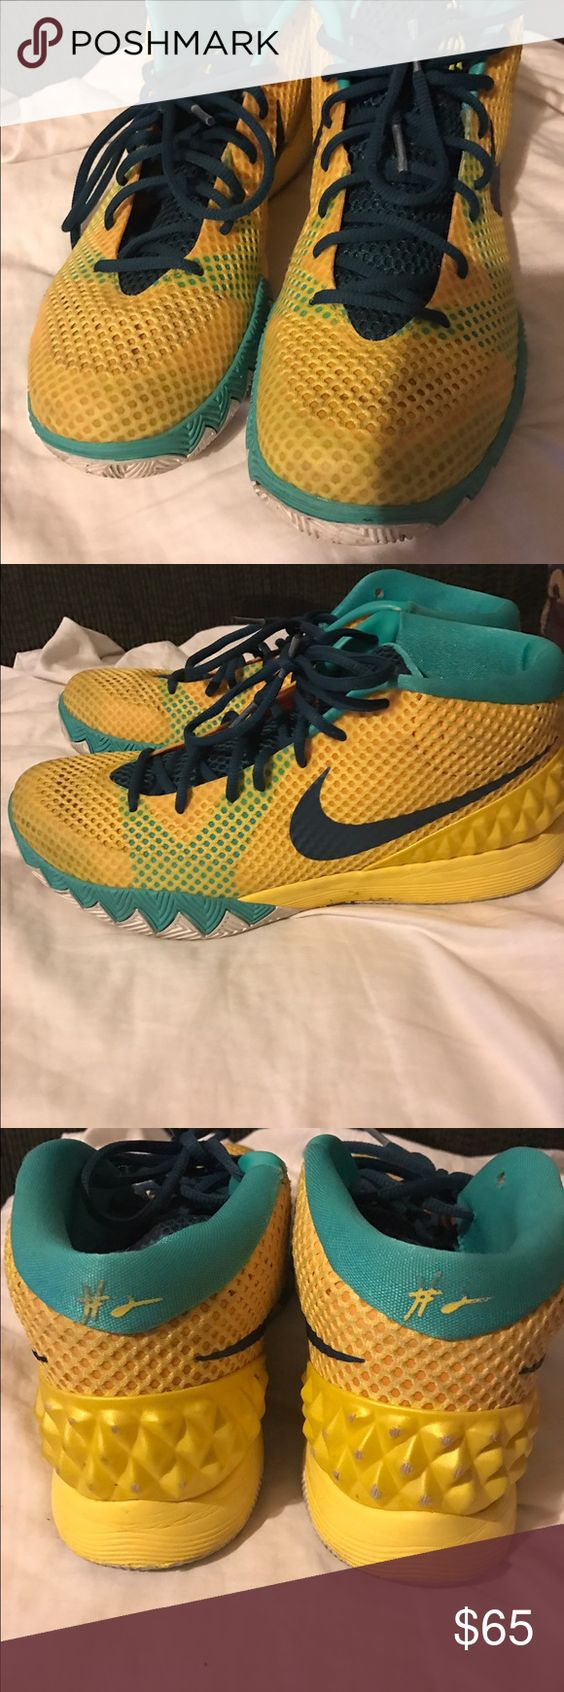 62058e2fd384 ... promo code for 812653 160 jordan cavs nike kyrie 1 letterman tour  yellow teal size 10.5